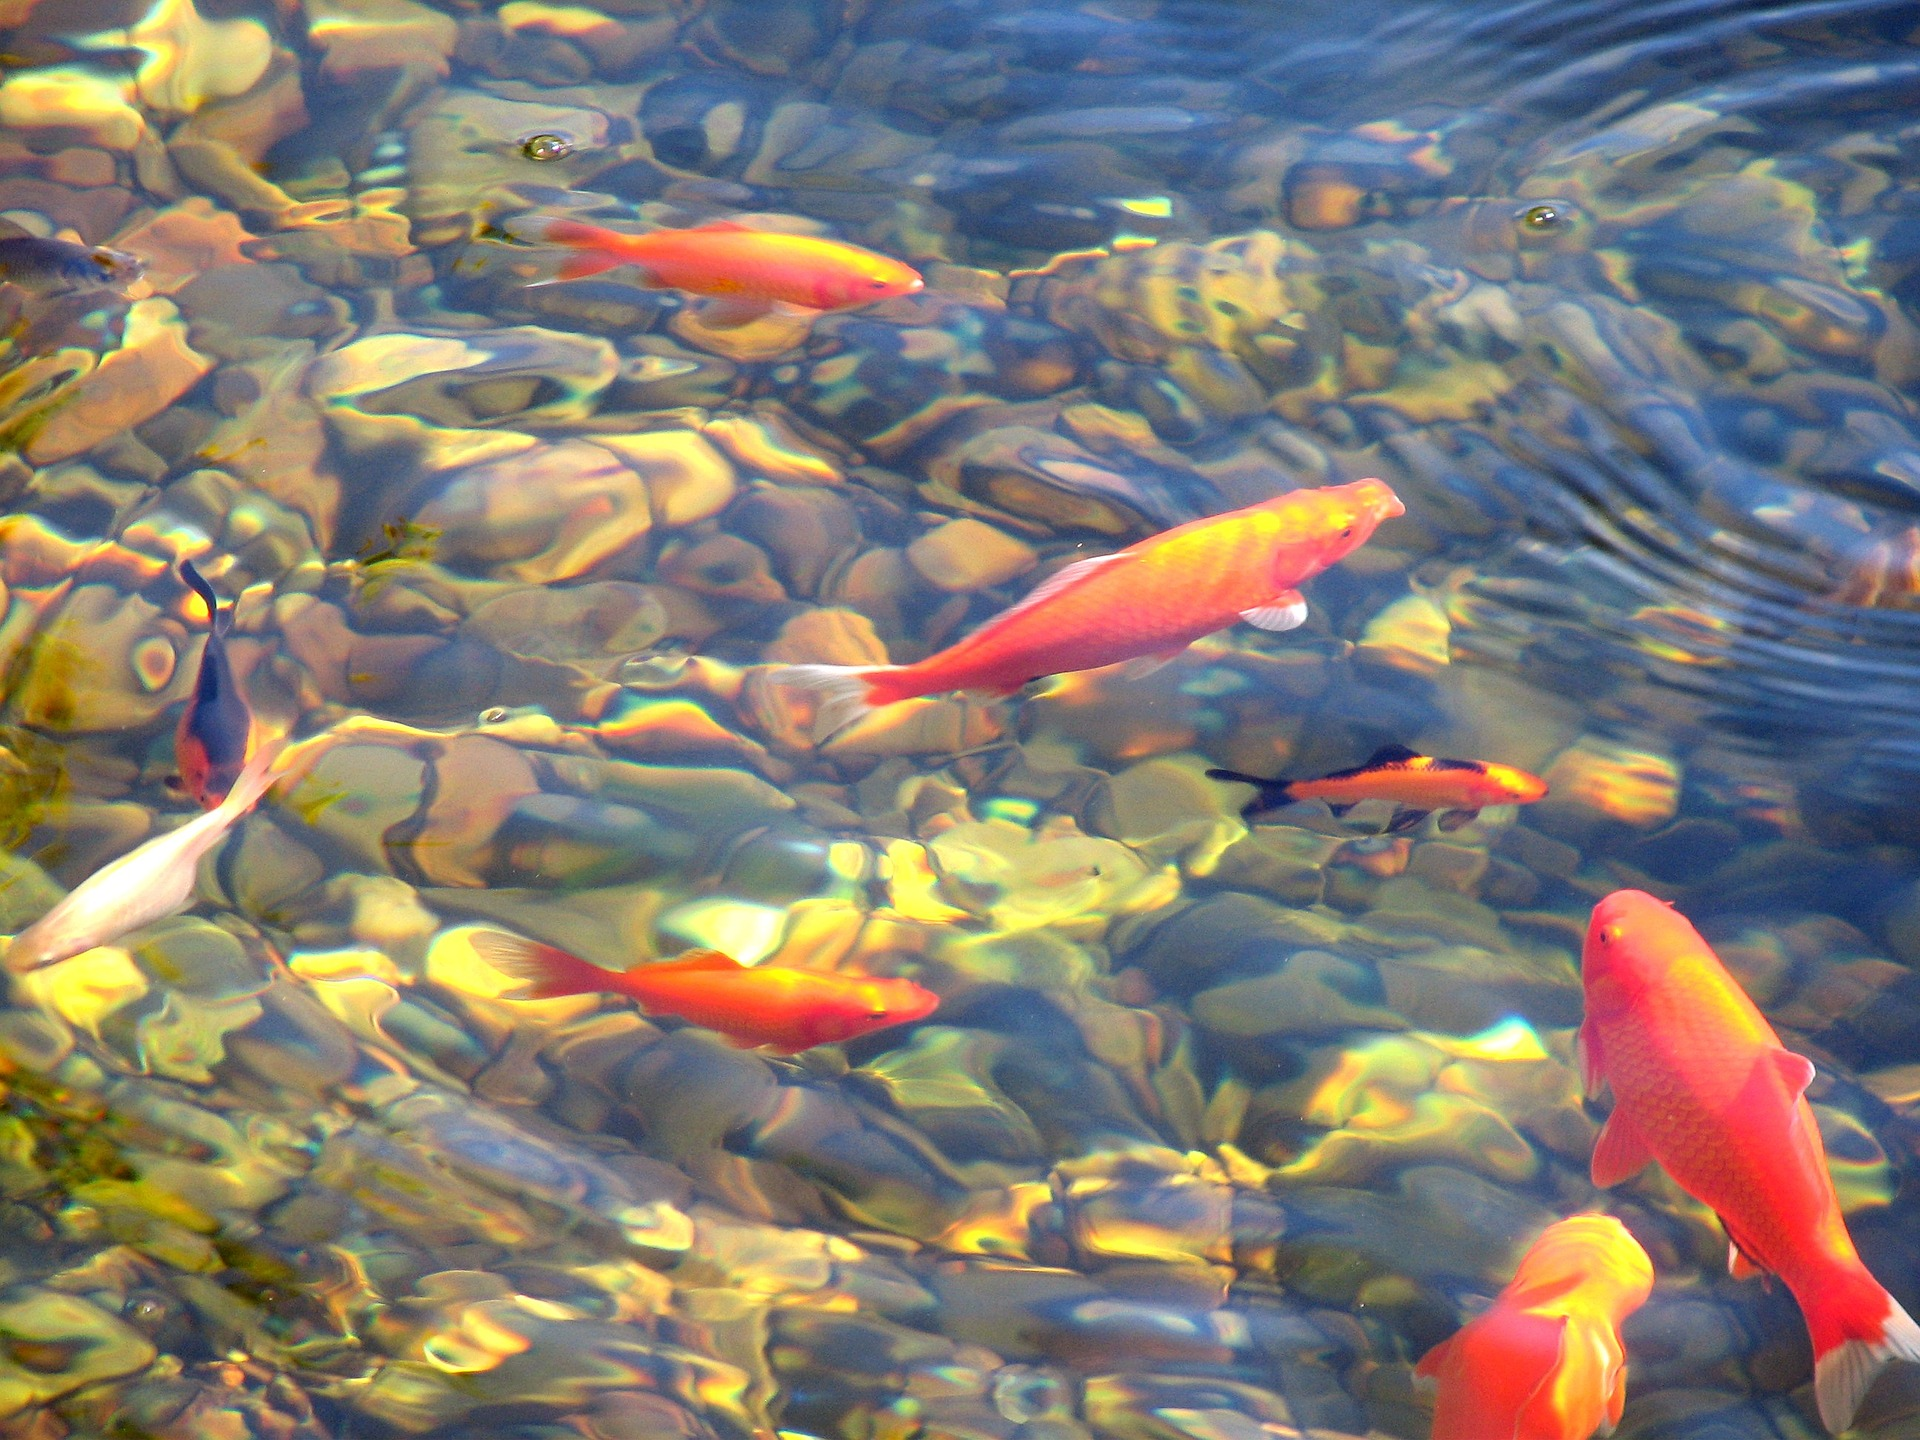 A group of Koi swimming in a pond.